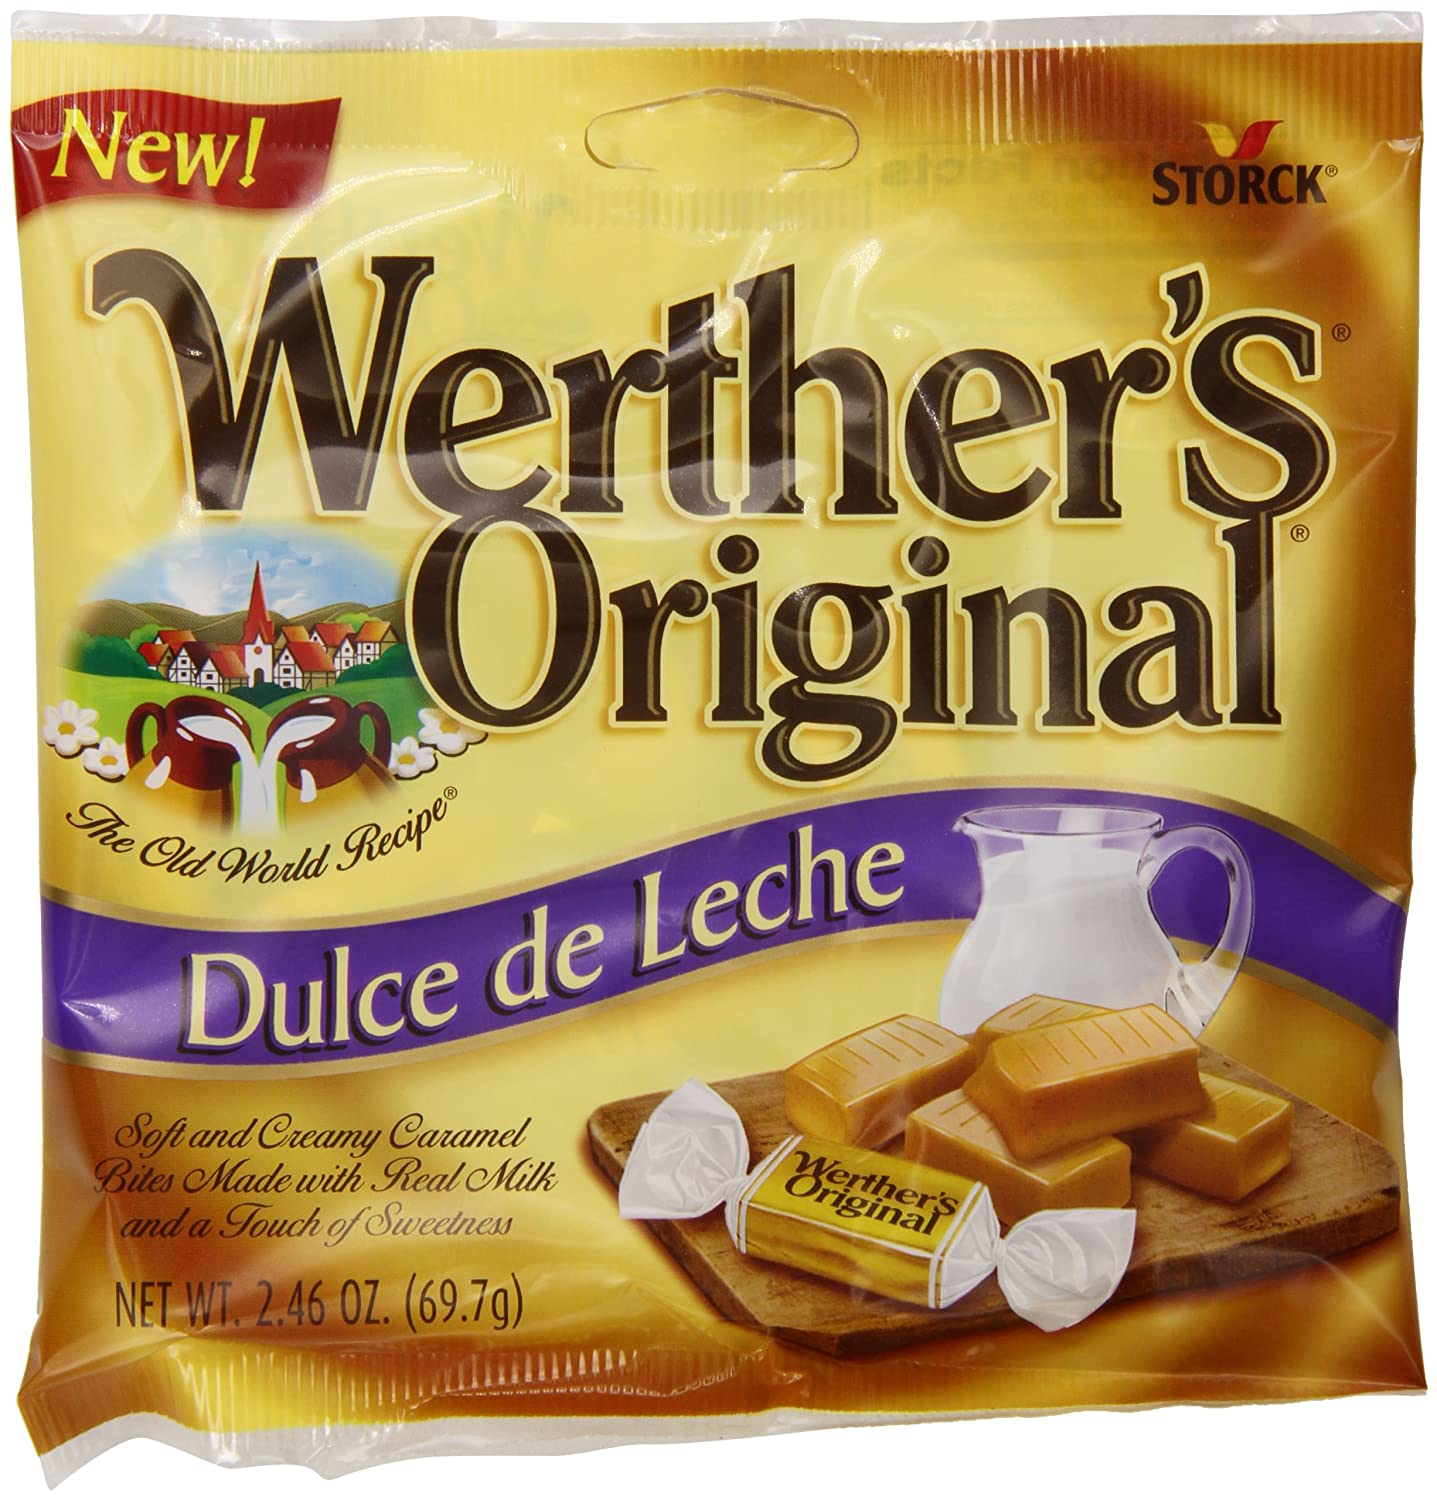 Amazon.com : Werthers Original Dulce de Leche Caramels, 2.46 Ounce (Pack of 12) : Caramel Candy : Grocery & Gourmet Food